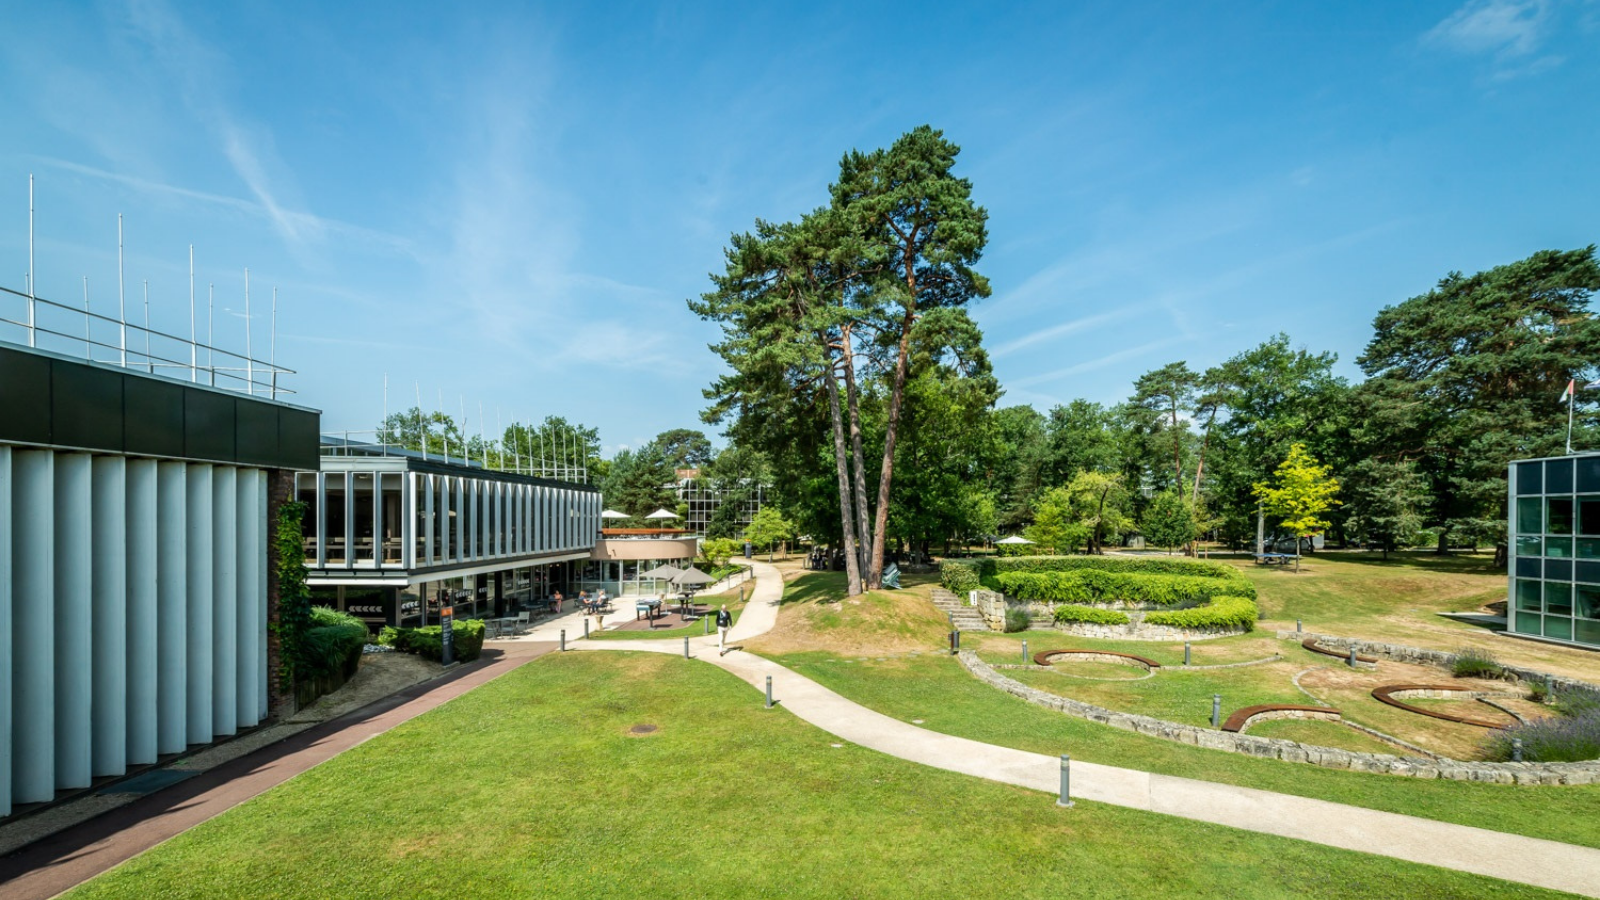 INSEAD Fontainebleau campus